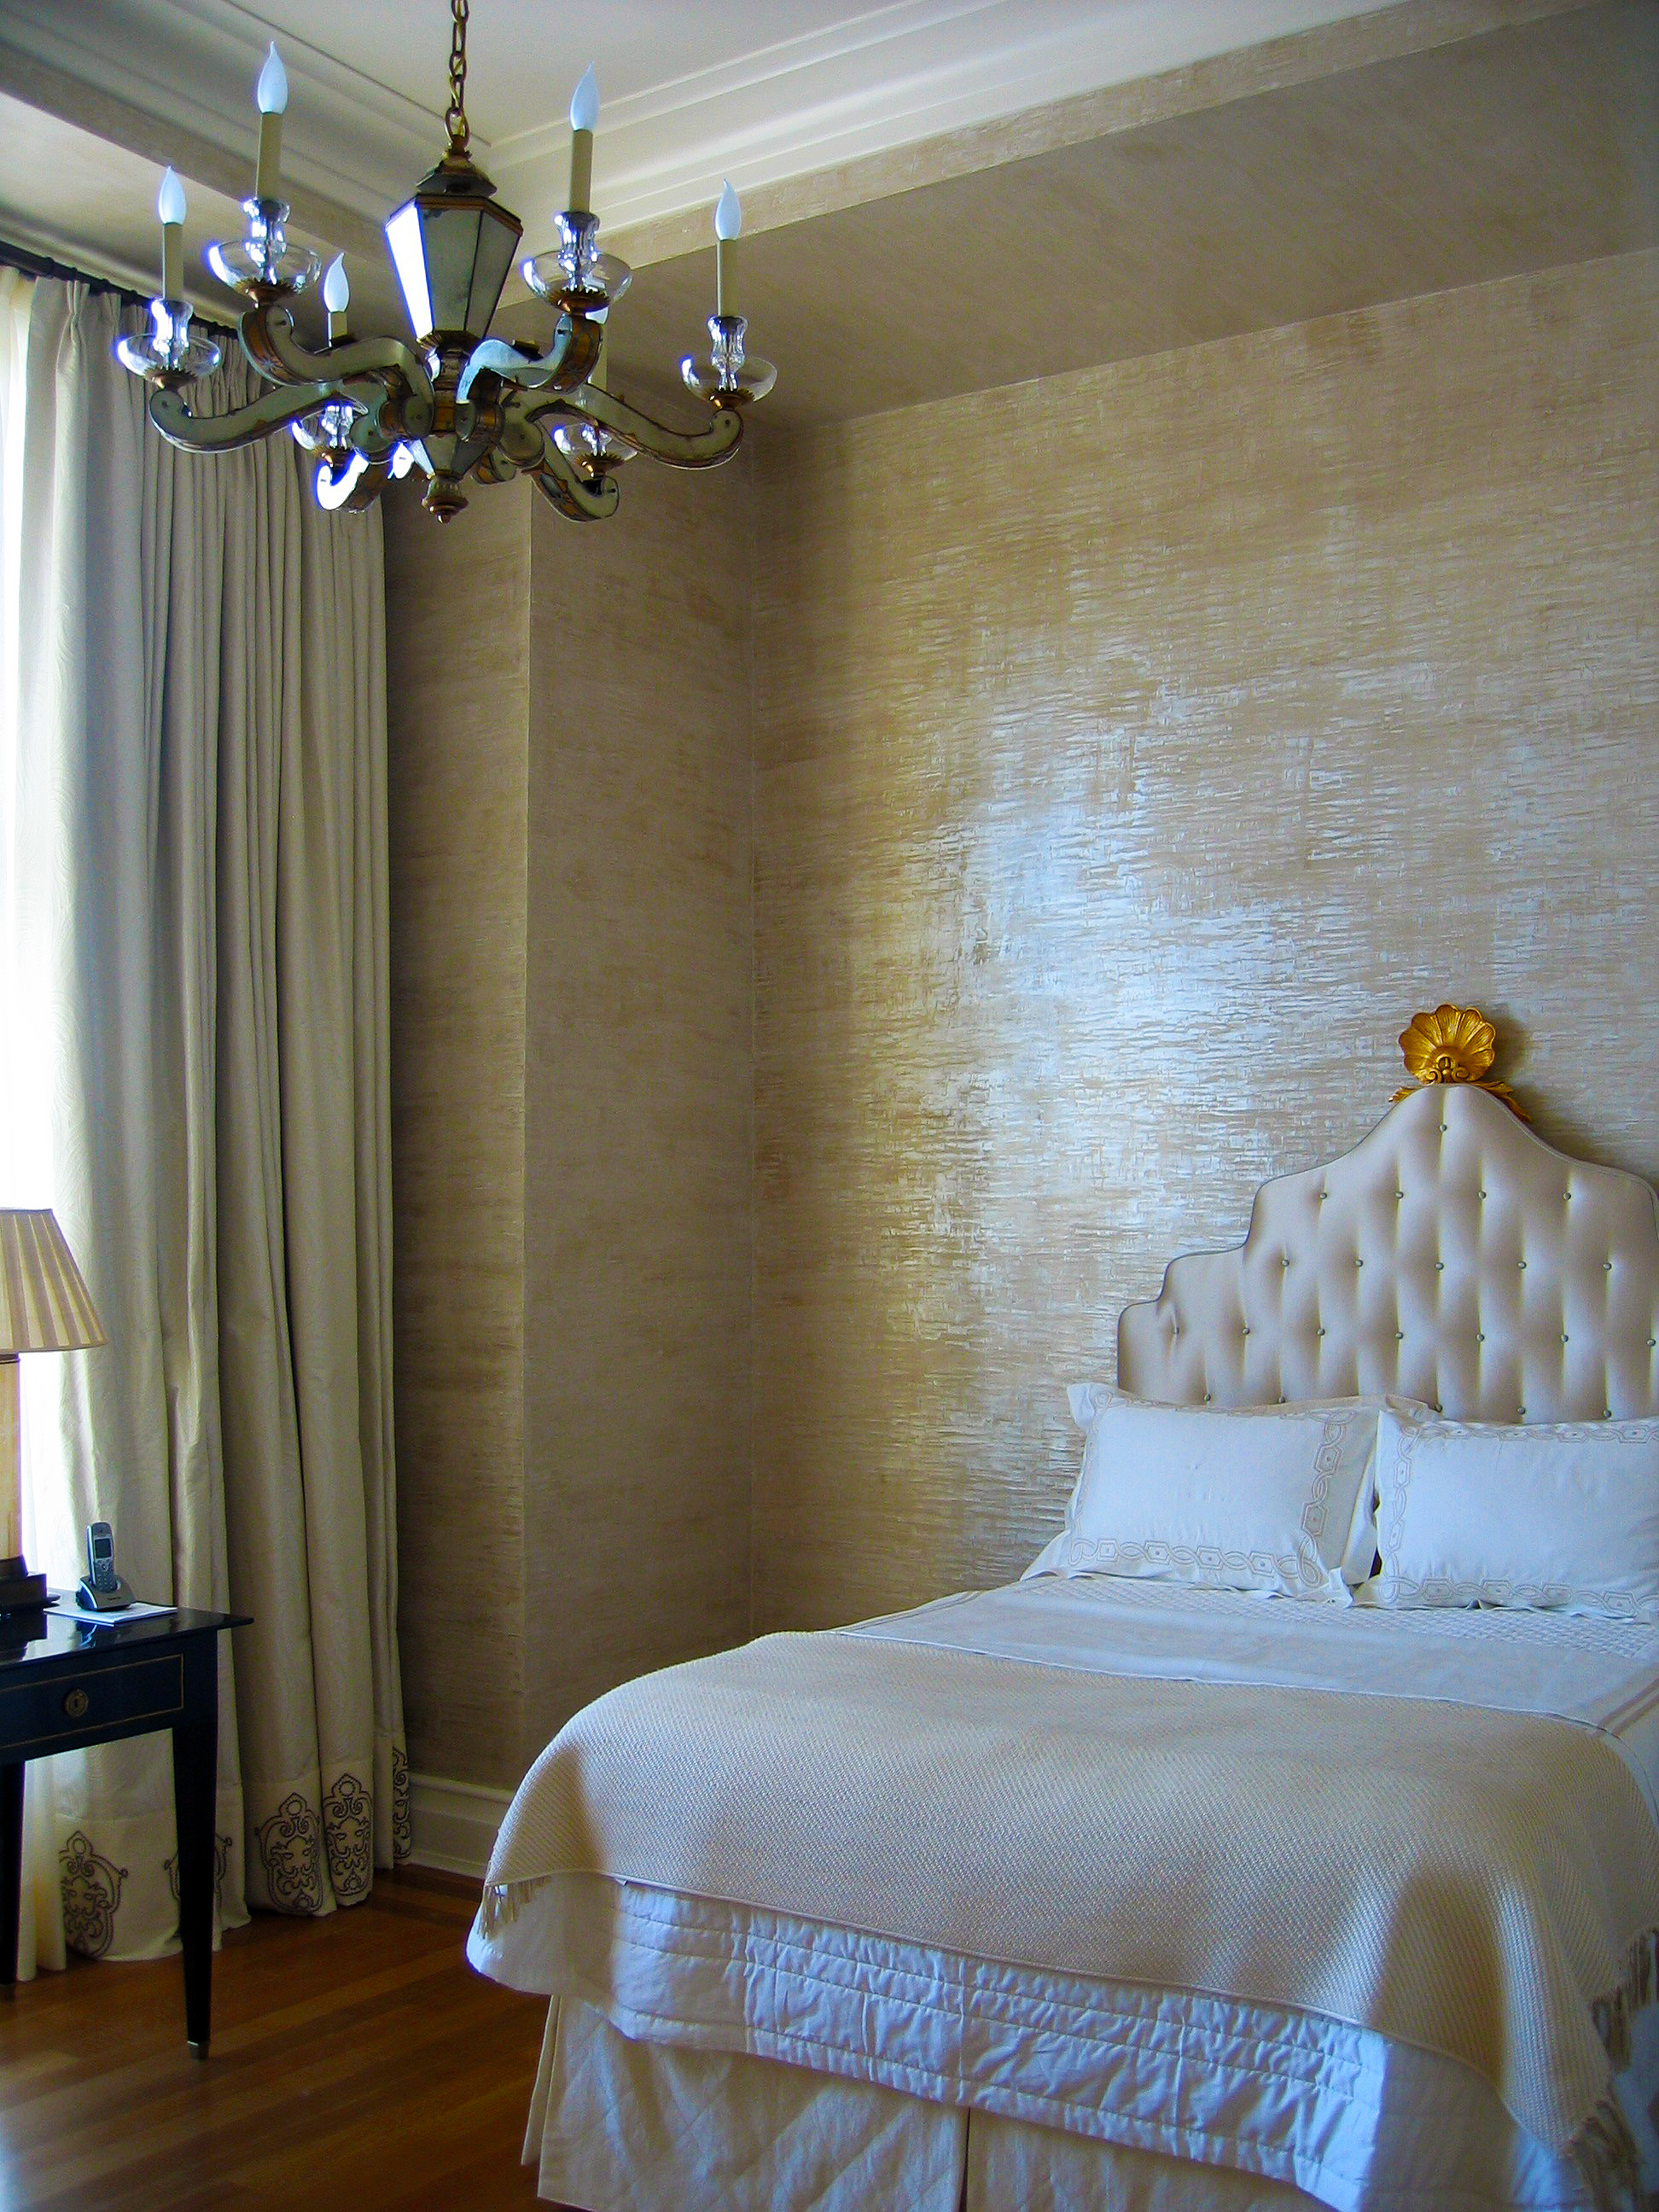 Rod Winterrowd   Private Residence, Central Park West, NYC   Bedroom